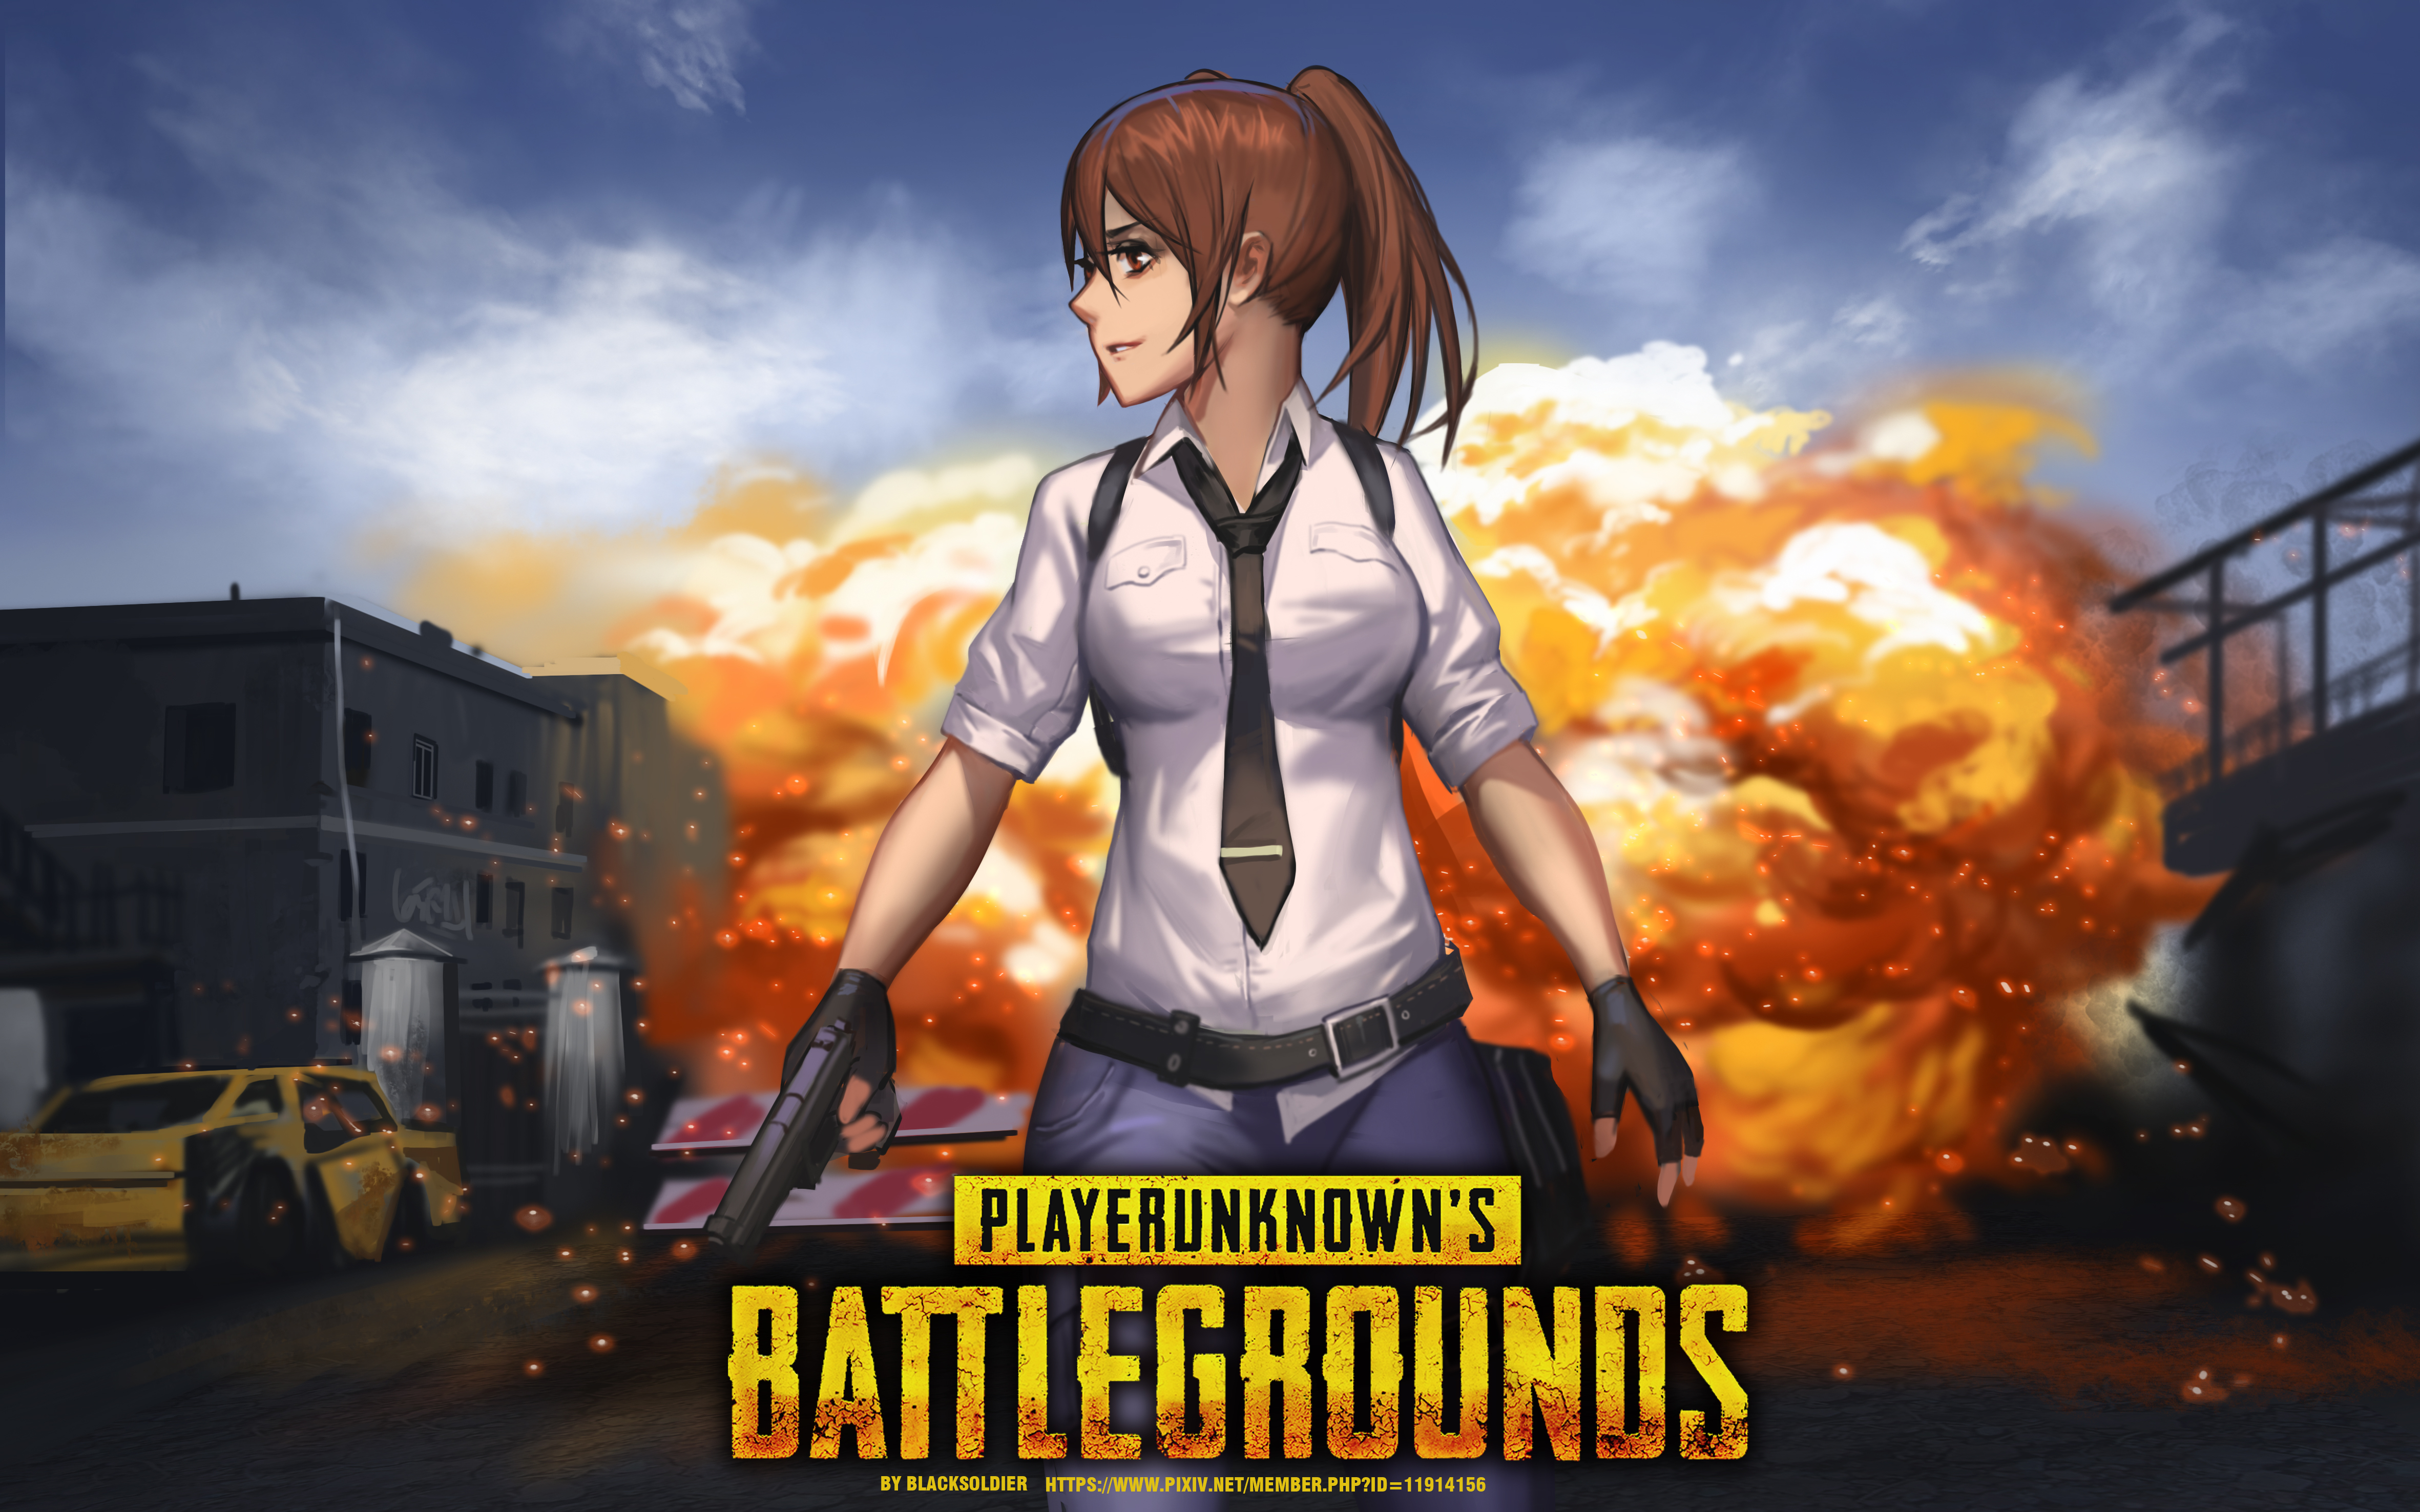 Woman With Guns Playerunknown S Battlegrounds Artwork: Playerunknown's Battlegrounds Drawn By Black Soldier